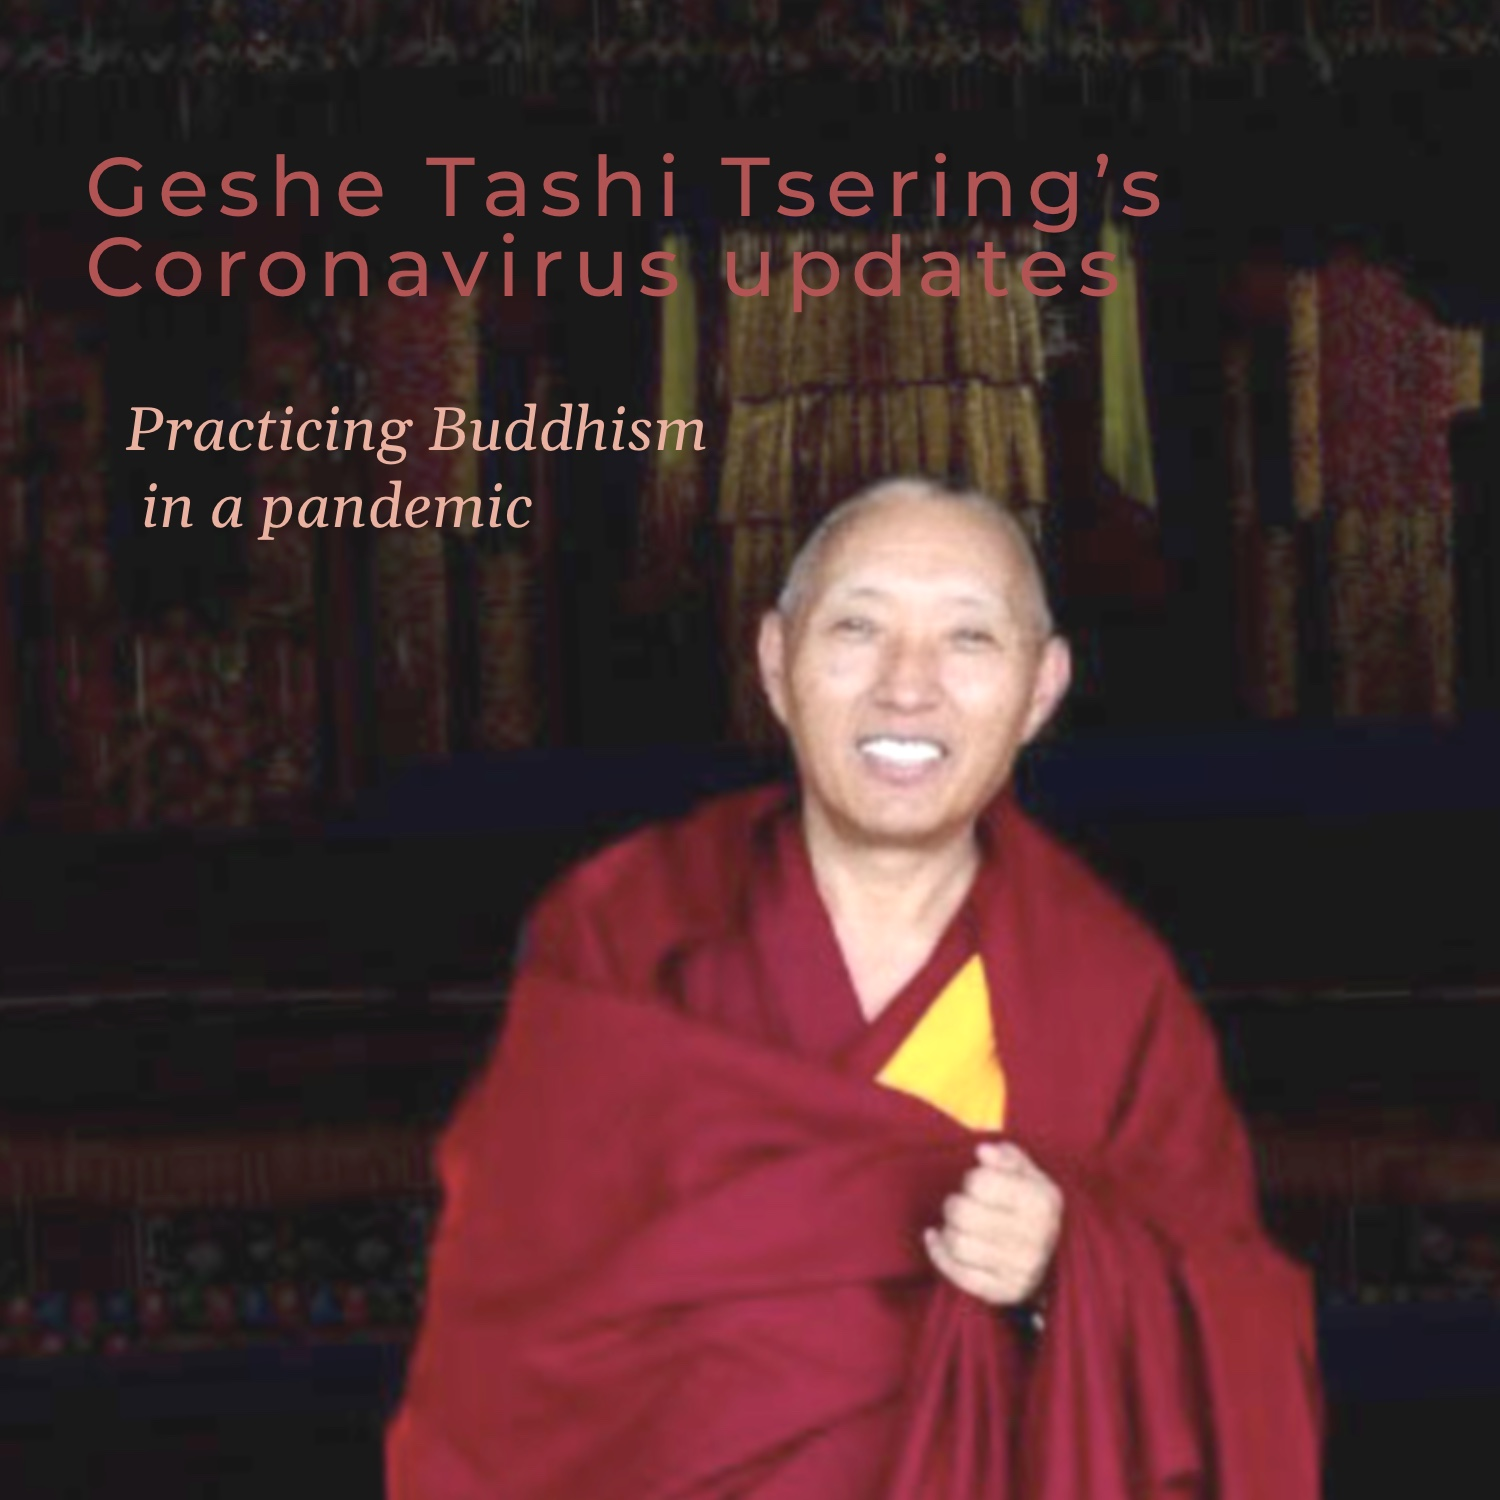 Practicing Buddhism in a Pandemic – Geshe Tashi Tsering's Coronavirus Update 17th April